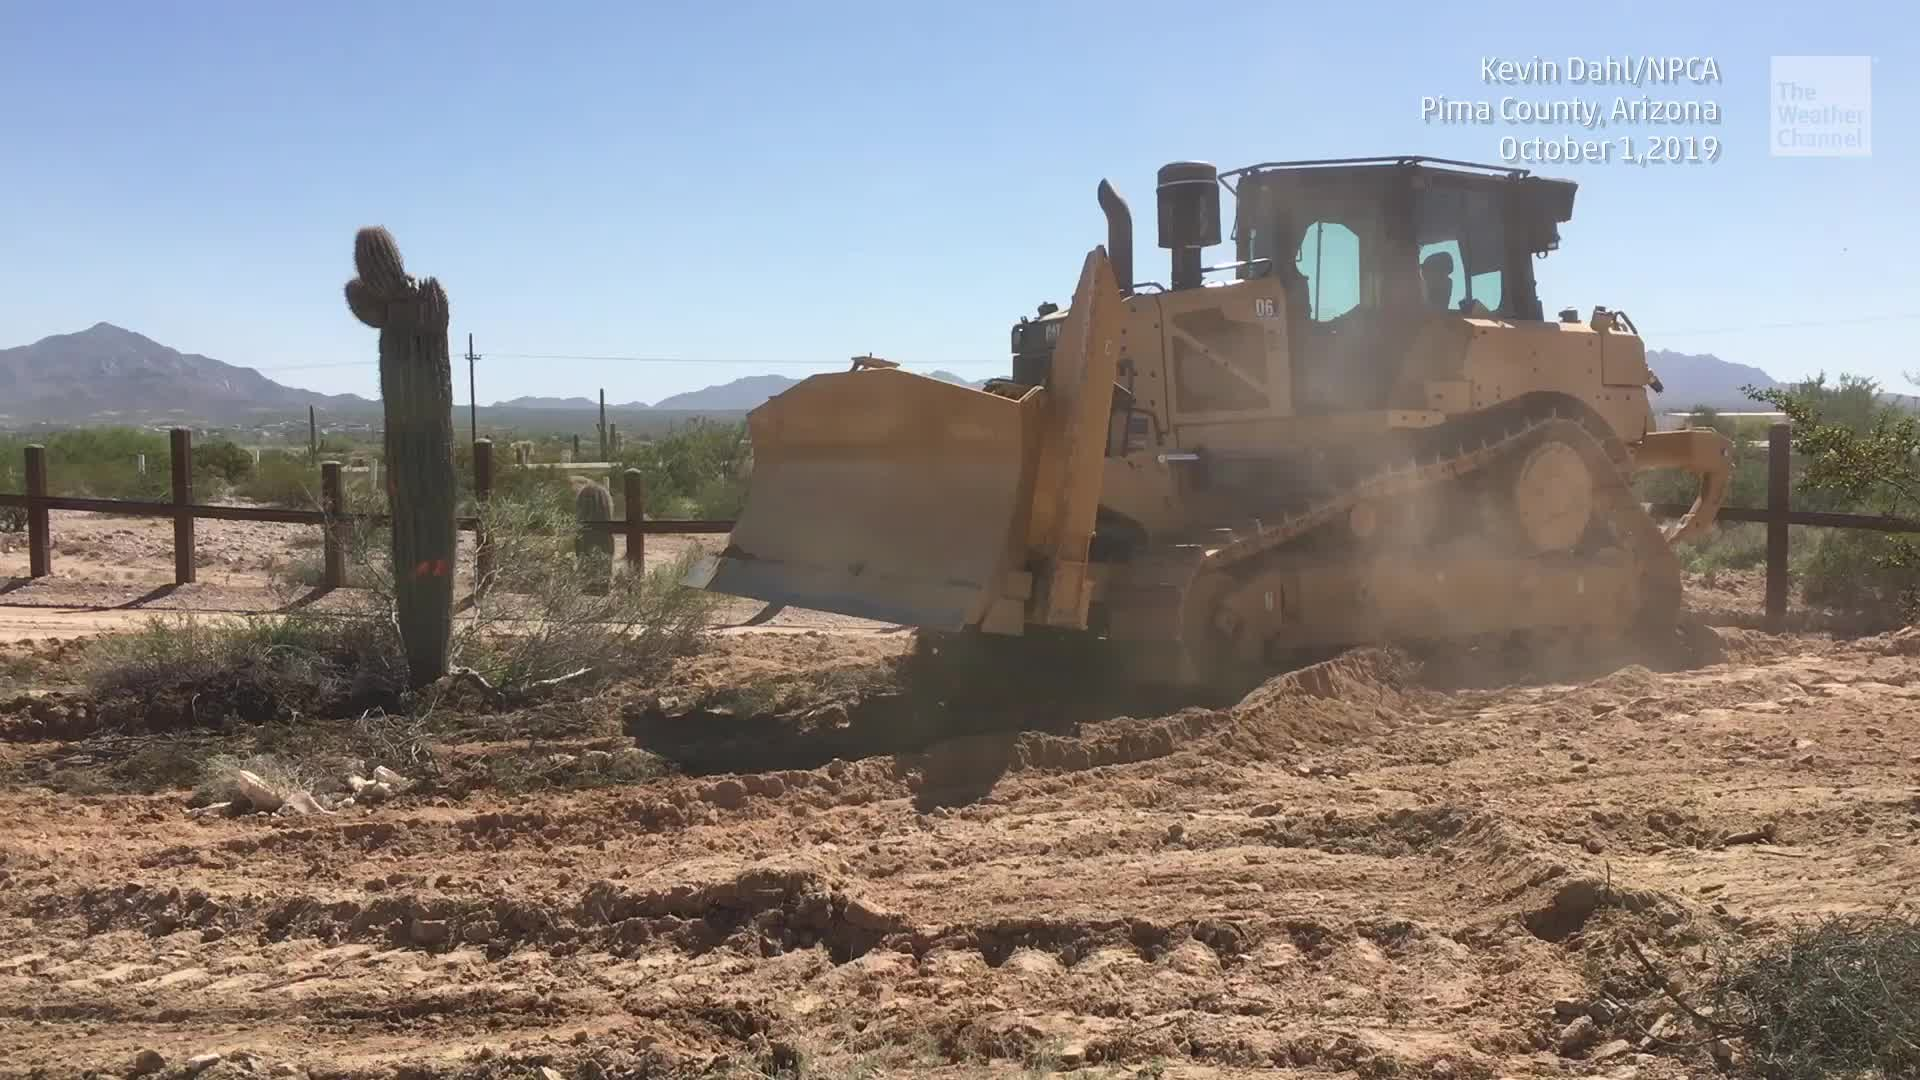 Outrage mounts as video shows iconic saguaro cactuses being bulldozed in Arizona to build President Trump's border wall.